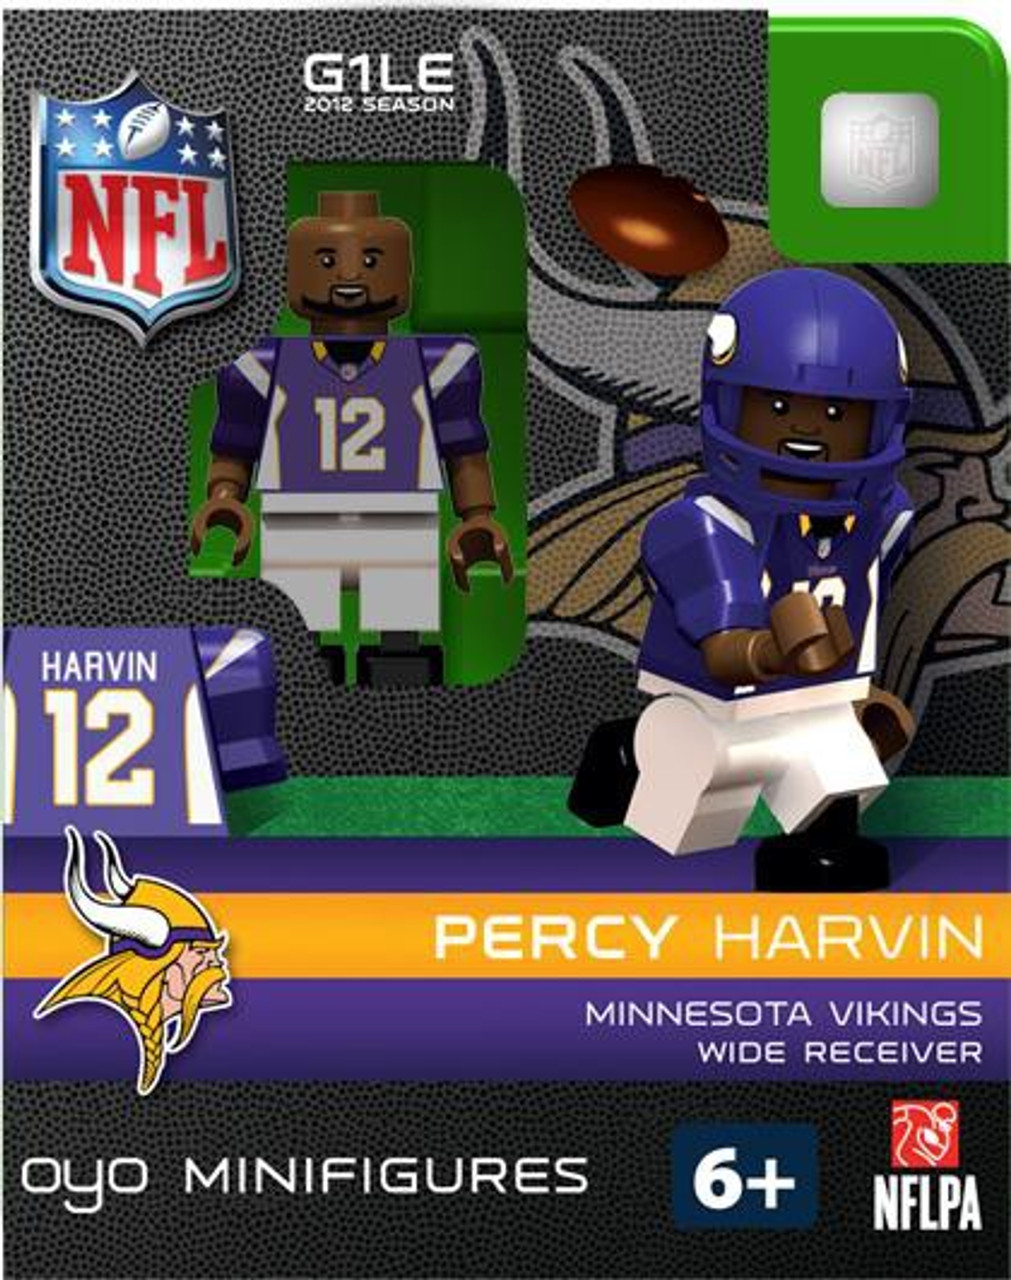 Minnesota Vikings NFL Generation 1 2012 Season Percy Harvin Minifigure